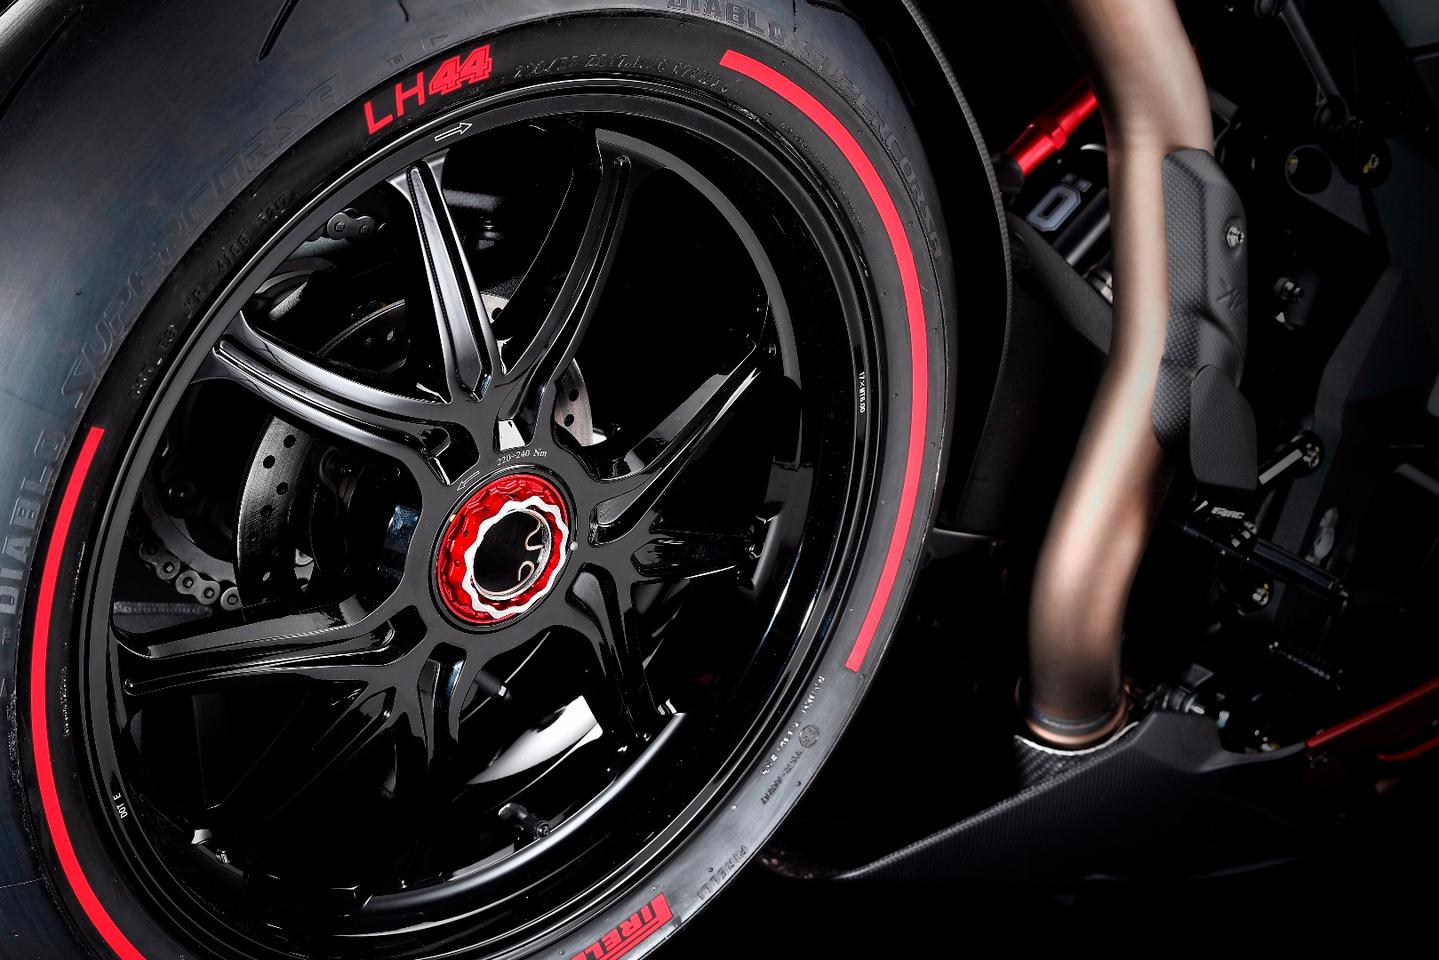 Pirelli designed a special batch of Diablo Supercorsa tires for the MV Agusta F4 LH44, sporting Hamilton's logo and red striping on the side walls